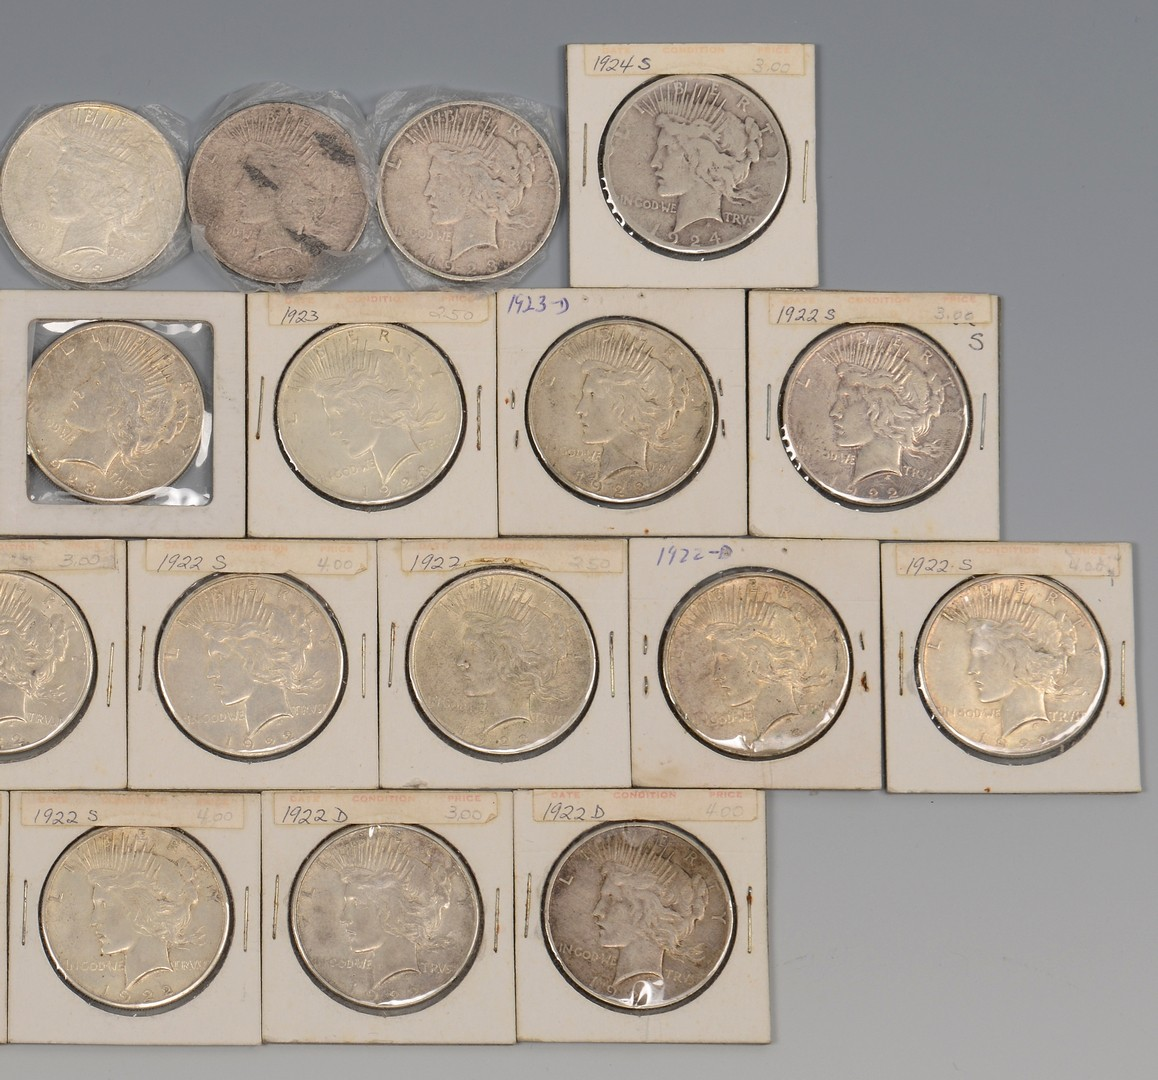 Lot 866: Group of 31 Silver Peace Dollars, 1922-1924